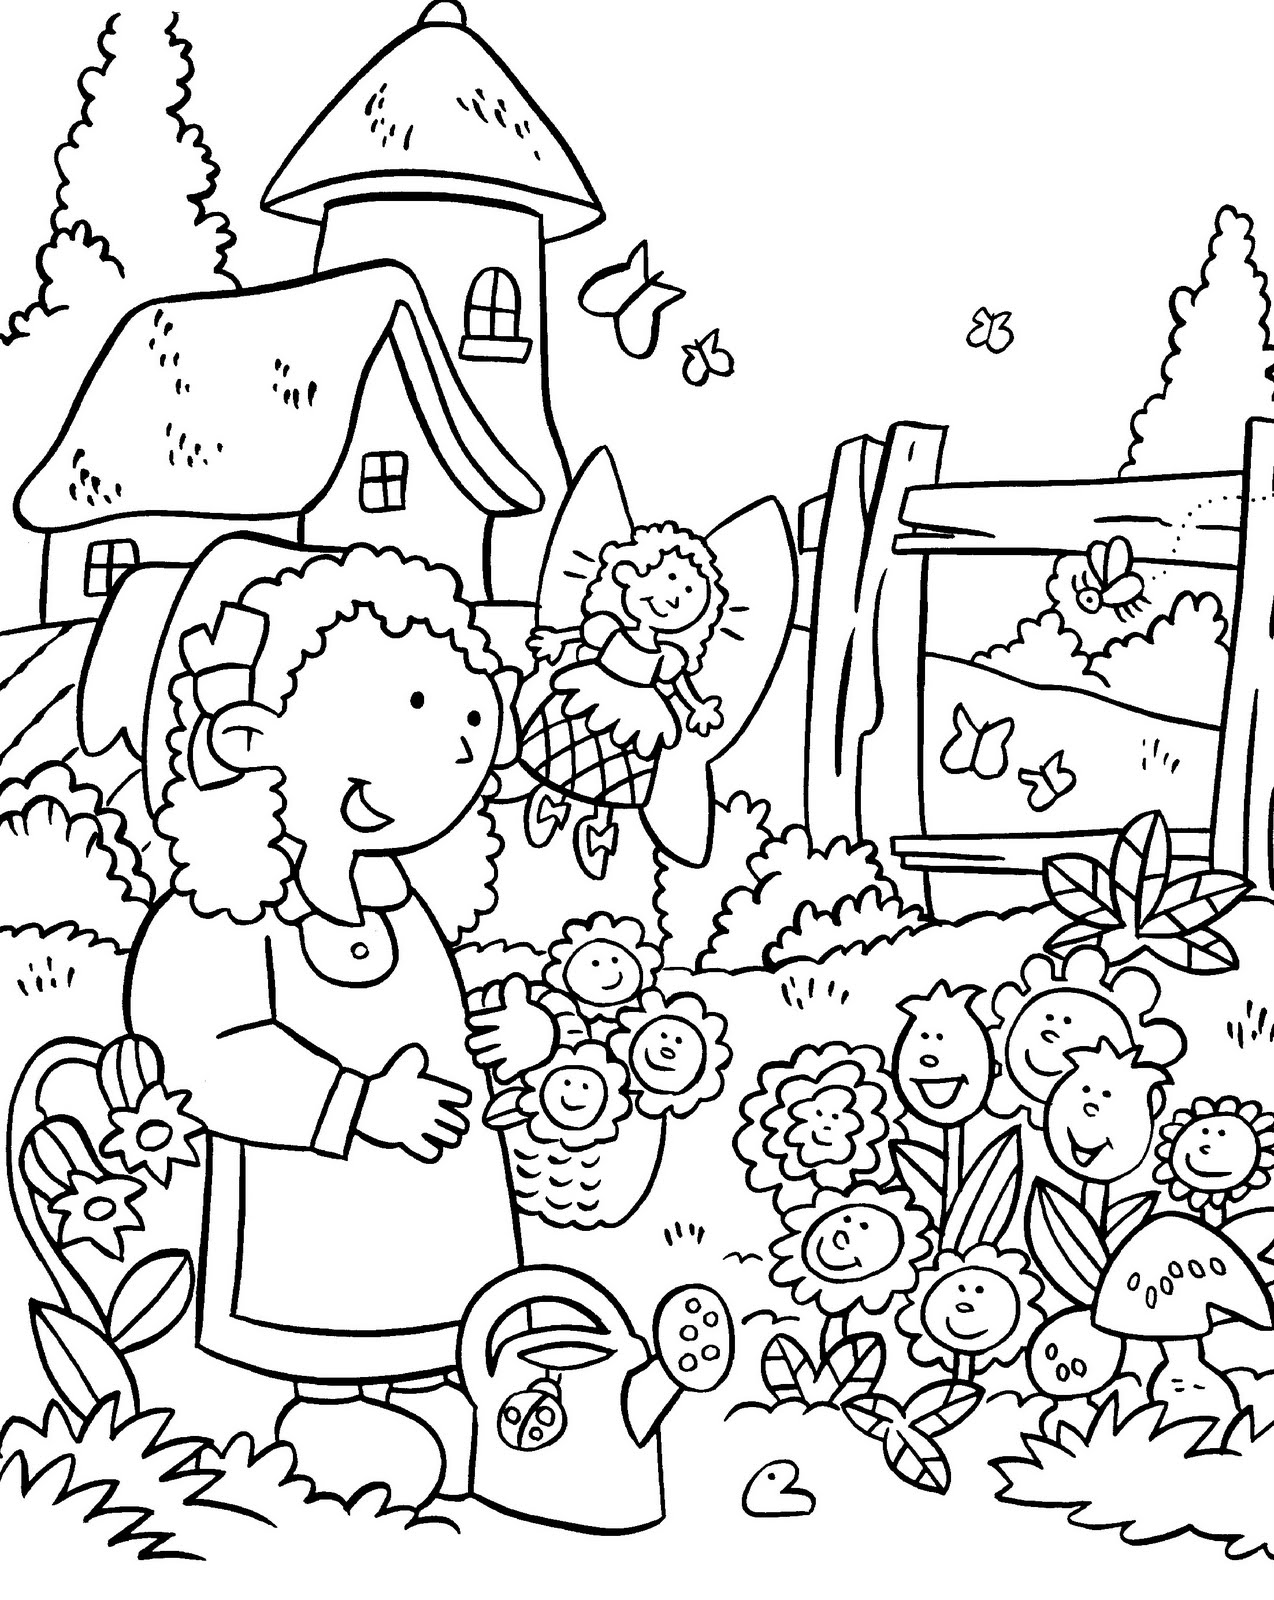 coloring pages free horticulture - photo#5